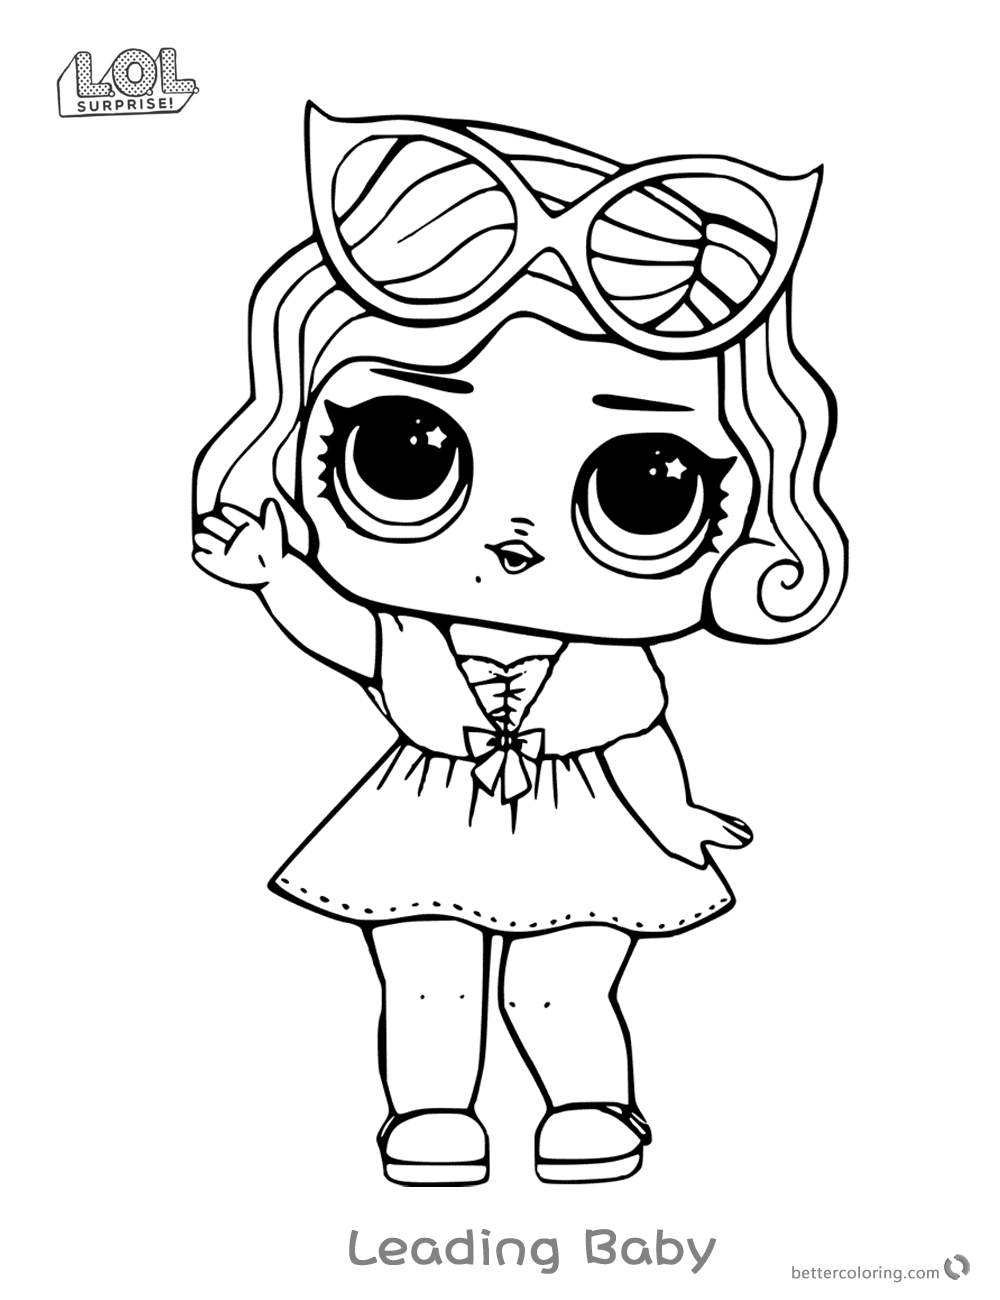 This is a picture of Gargantuan Lol Surprise Doll Coloring Pages Printable